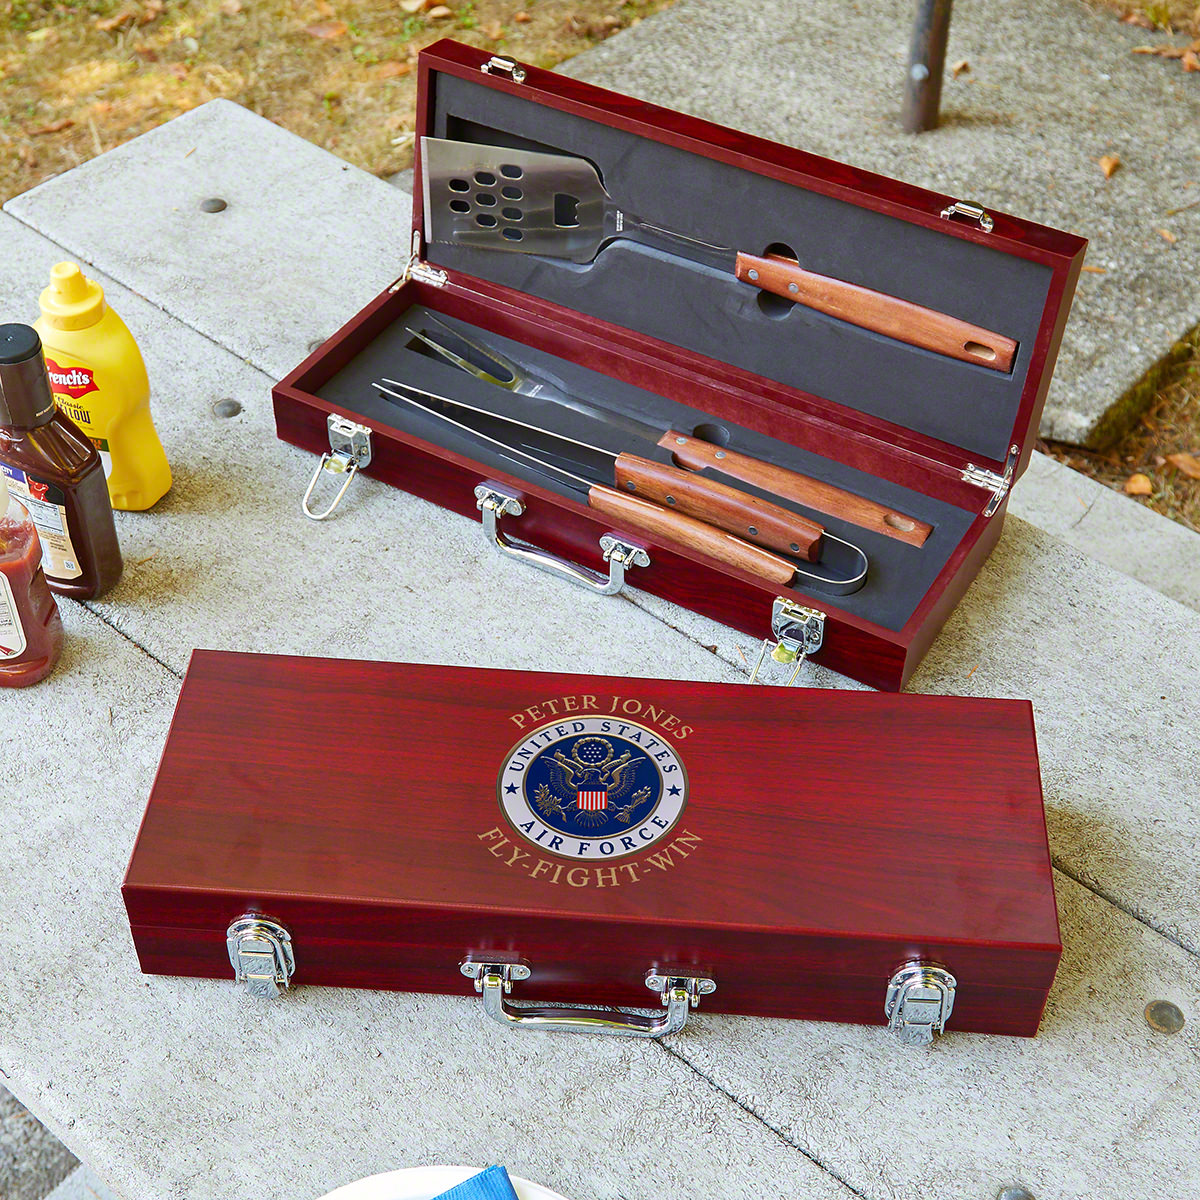 Air Force Personalized Grilling Tools Air Force Gift Ideas